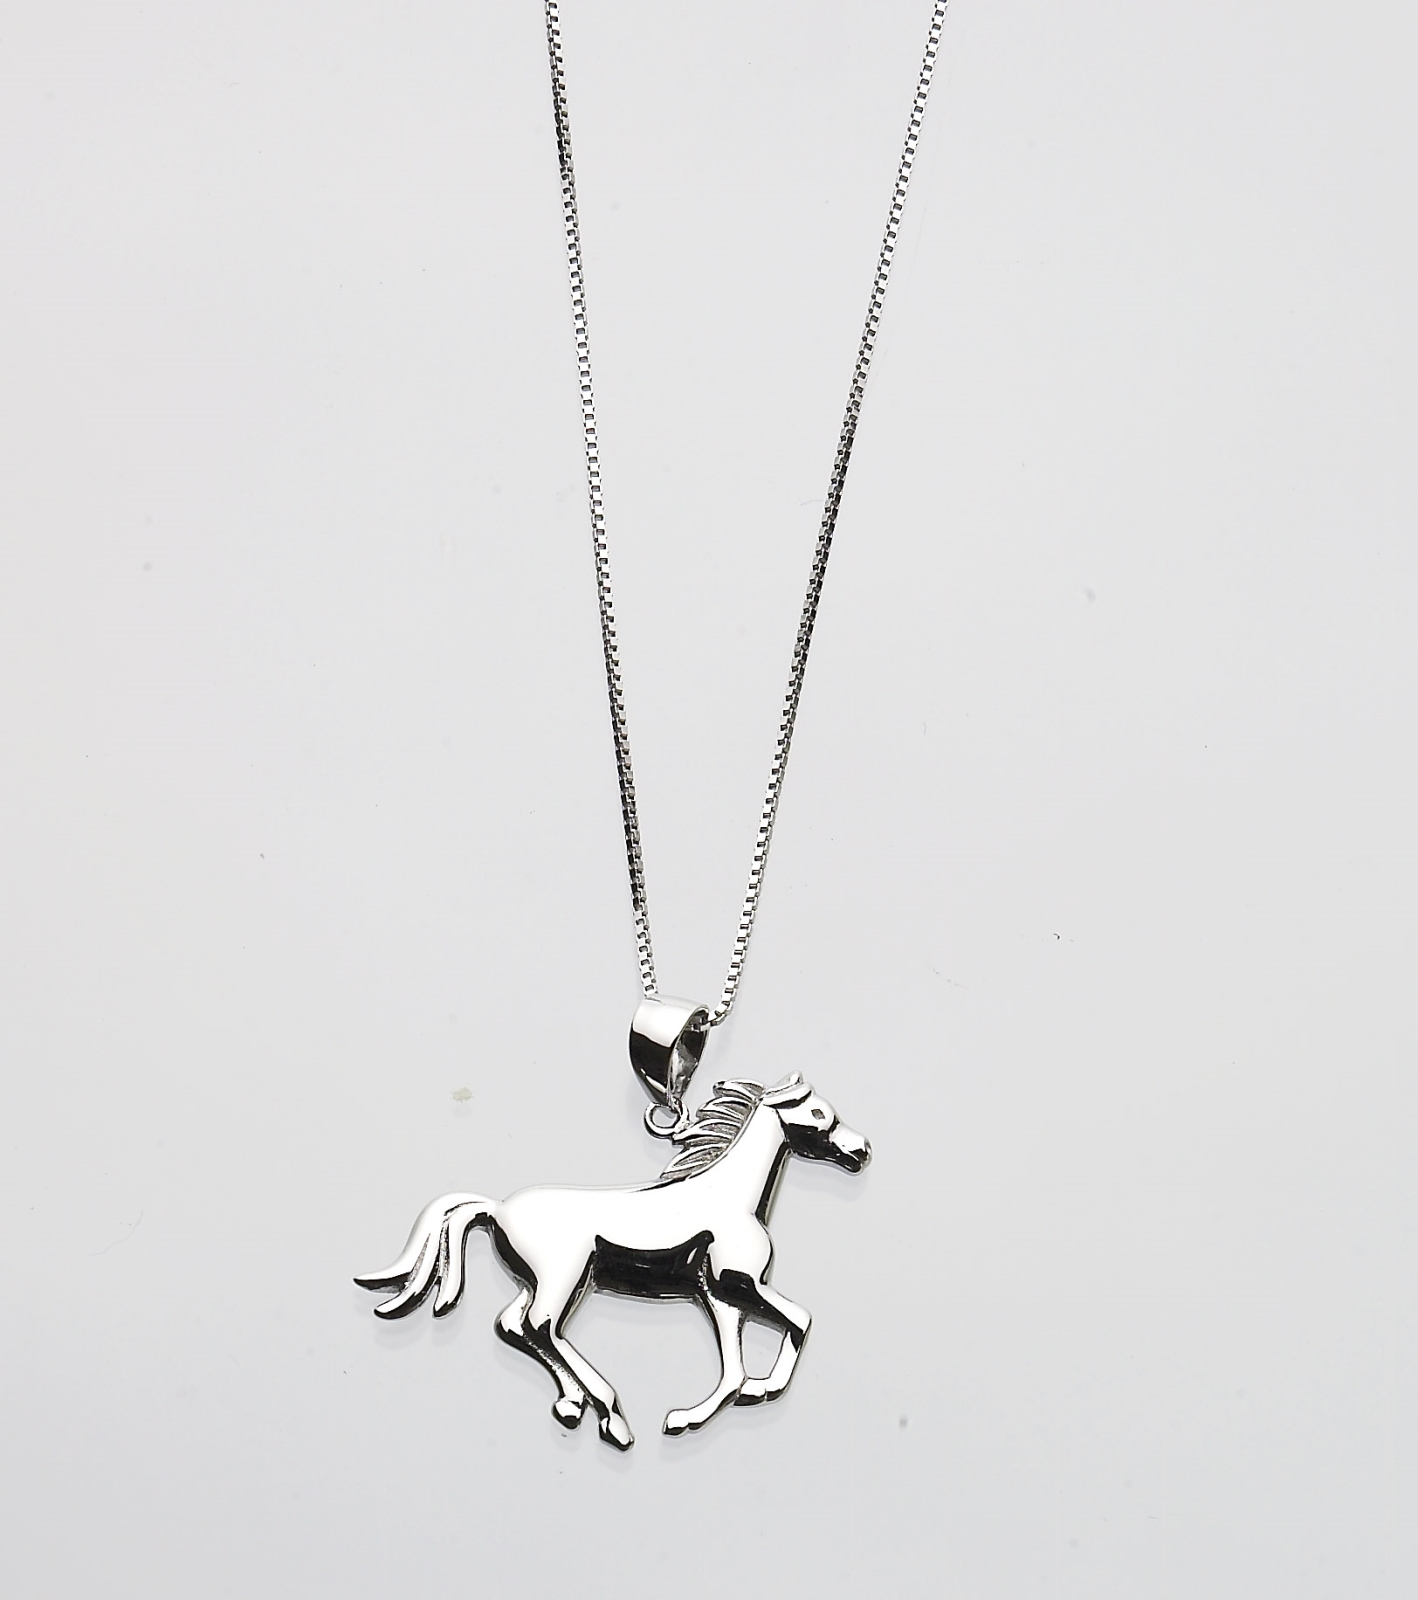 Shiny Running Horse Necklace